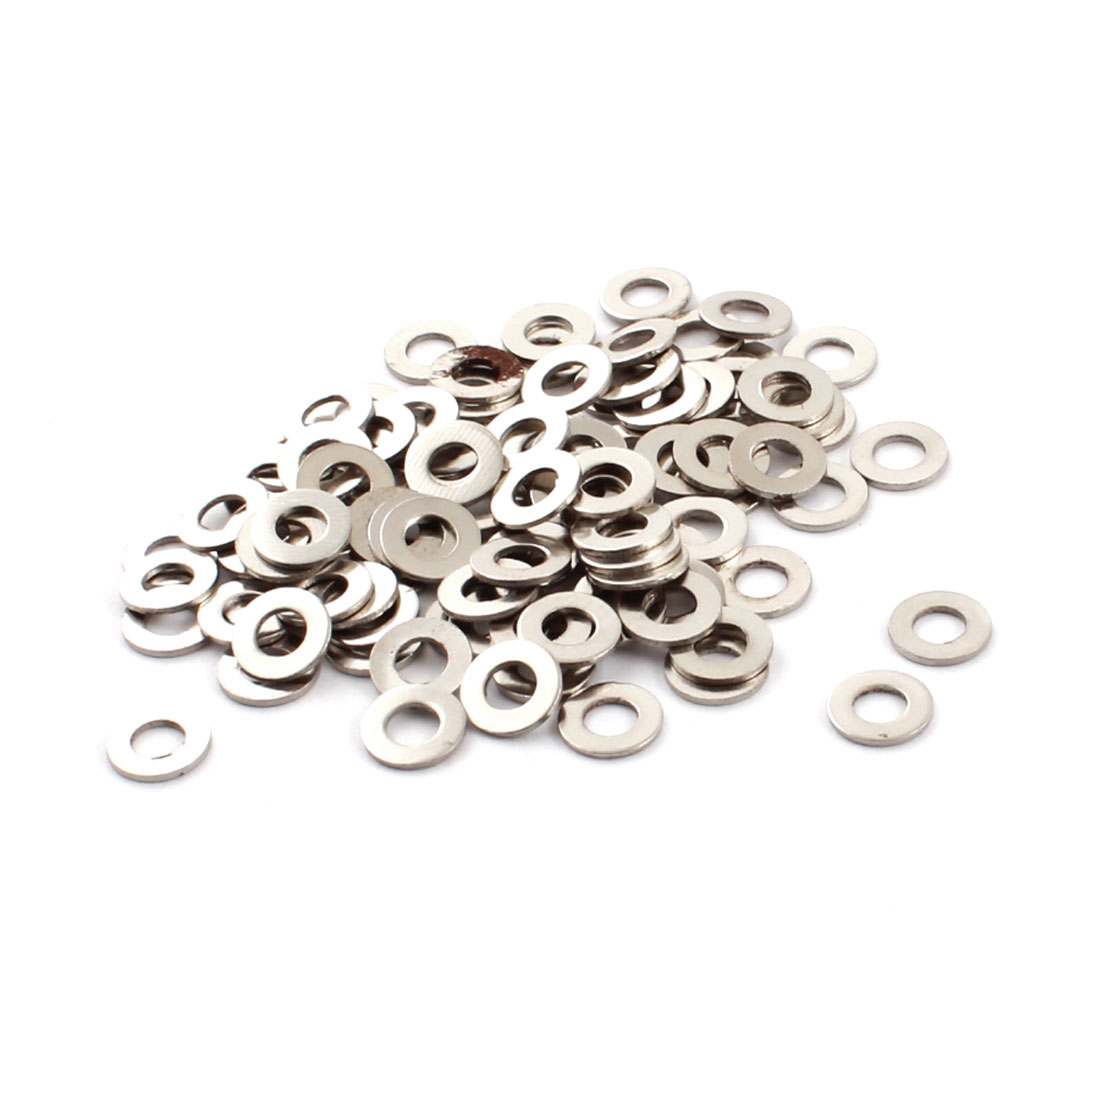 100Pcs Spare Parts 4mm x 8mm x 0.7mm Round Shaped Metal Washers Spacers Fasteners Rings